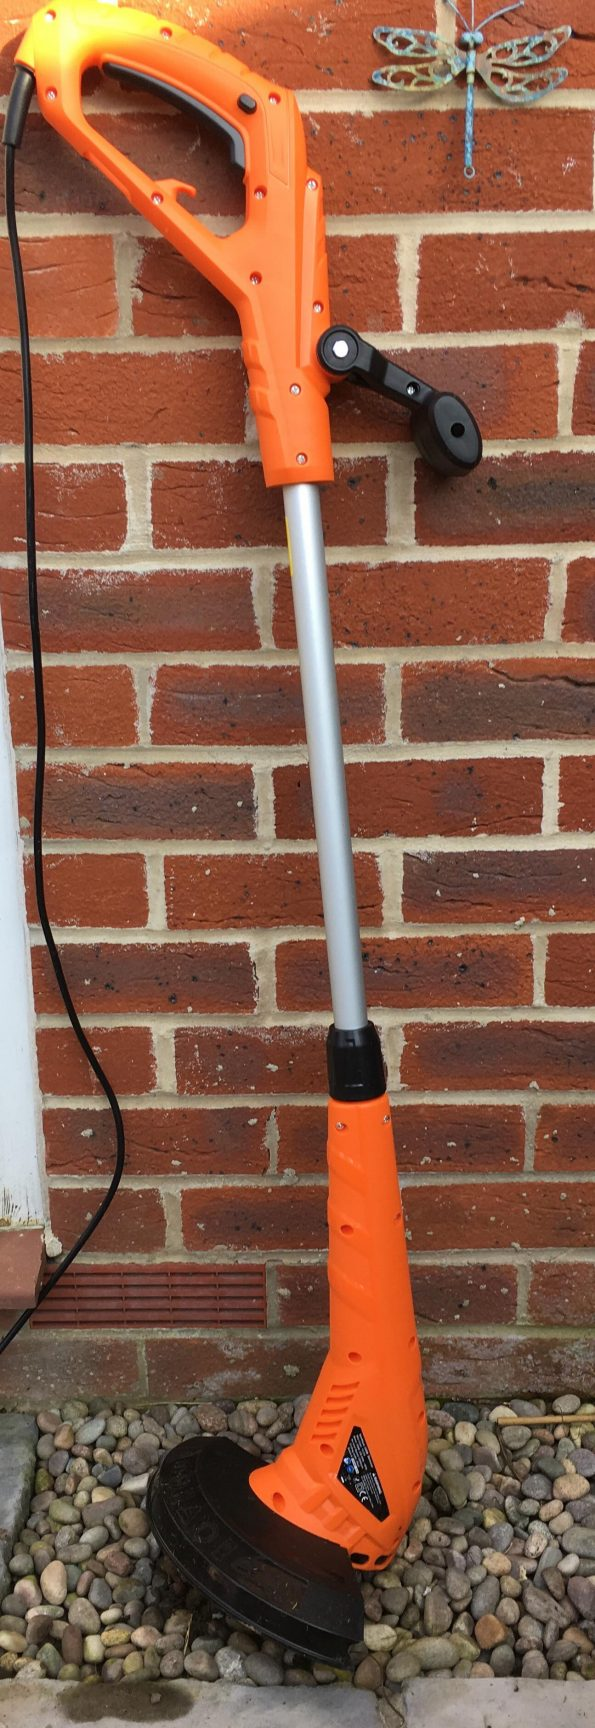 strimmer leaning against a wall